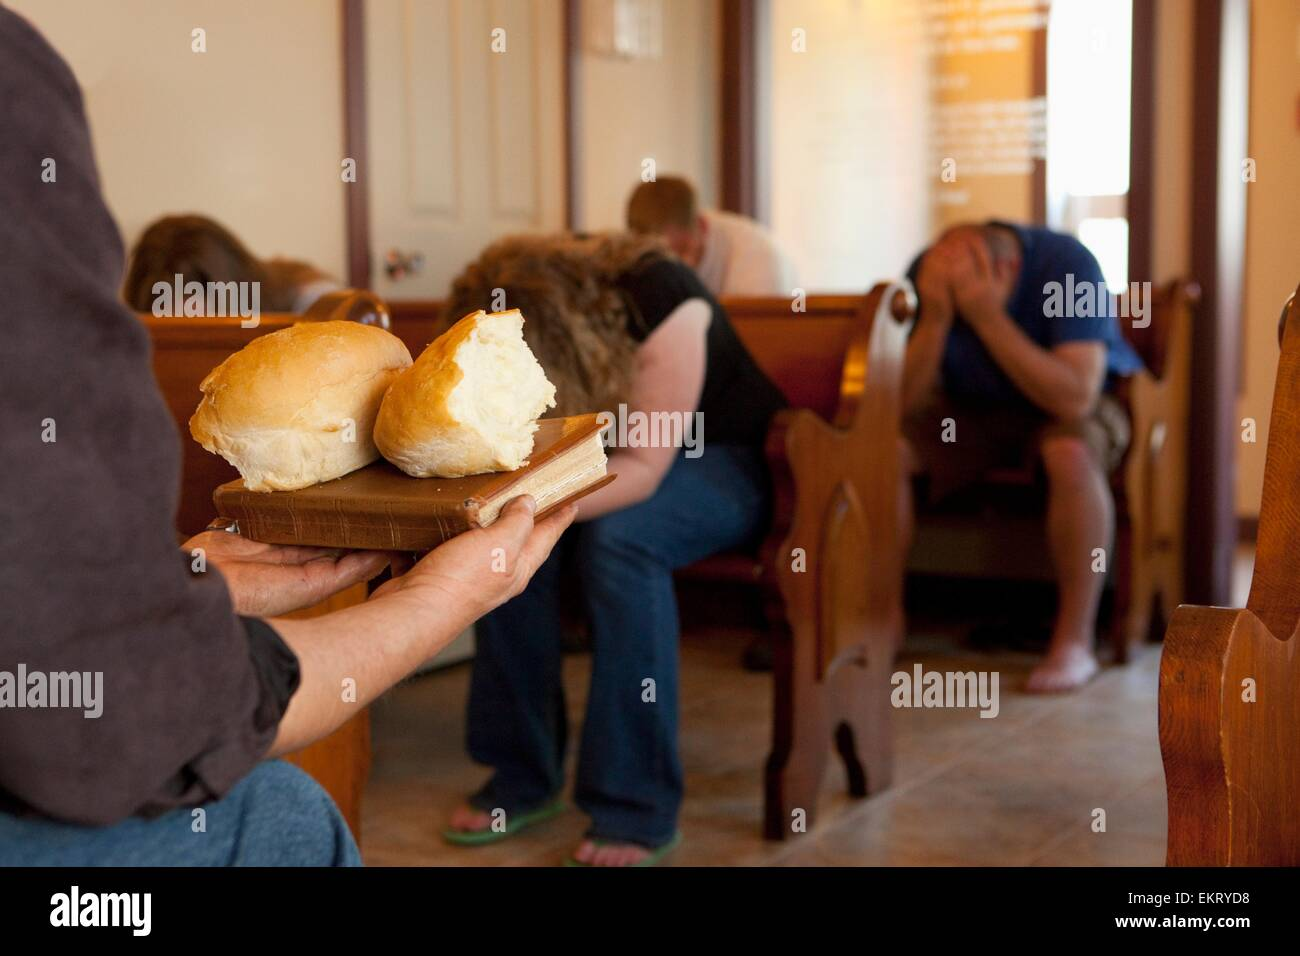 A Group Of People With Heads Bowed Ready To Take Bread For Communion; Manica, Mozambique, Africa - Stock Image